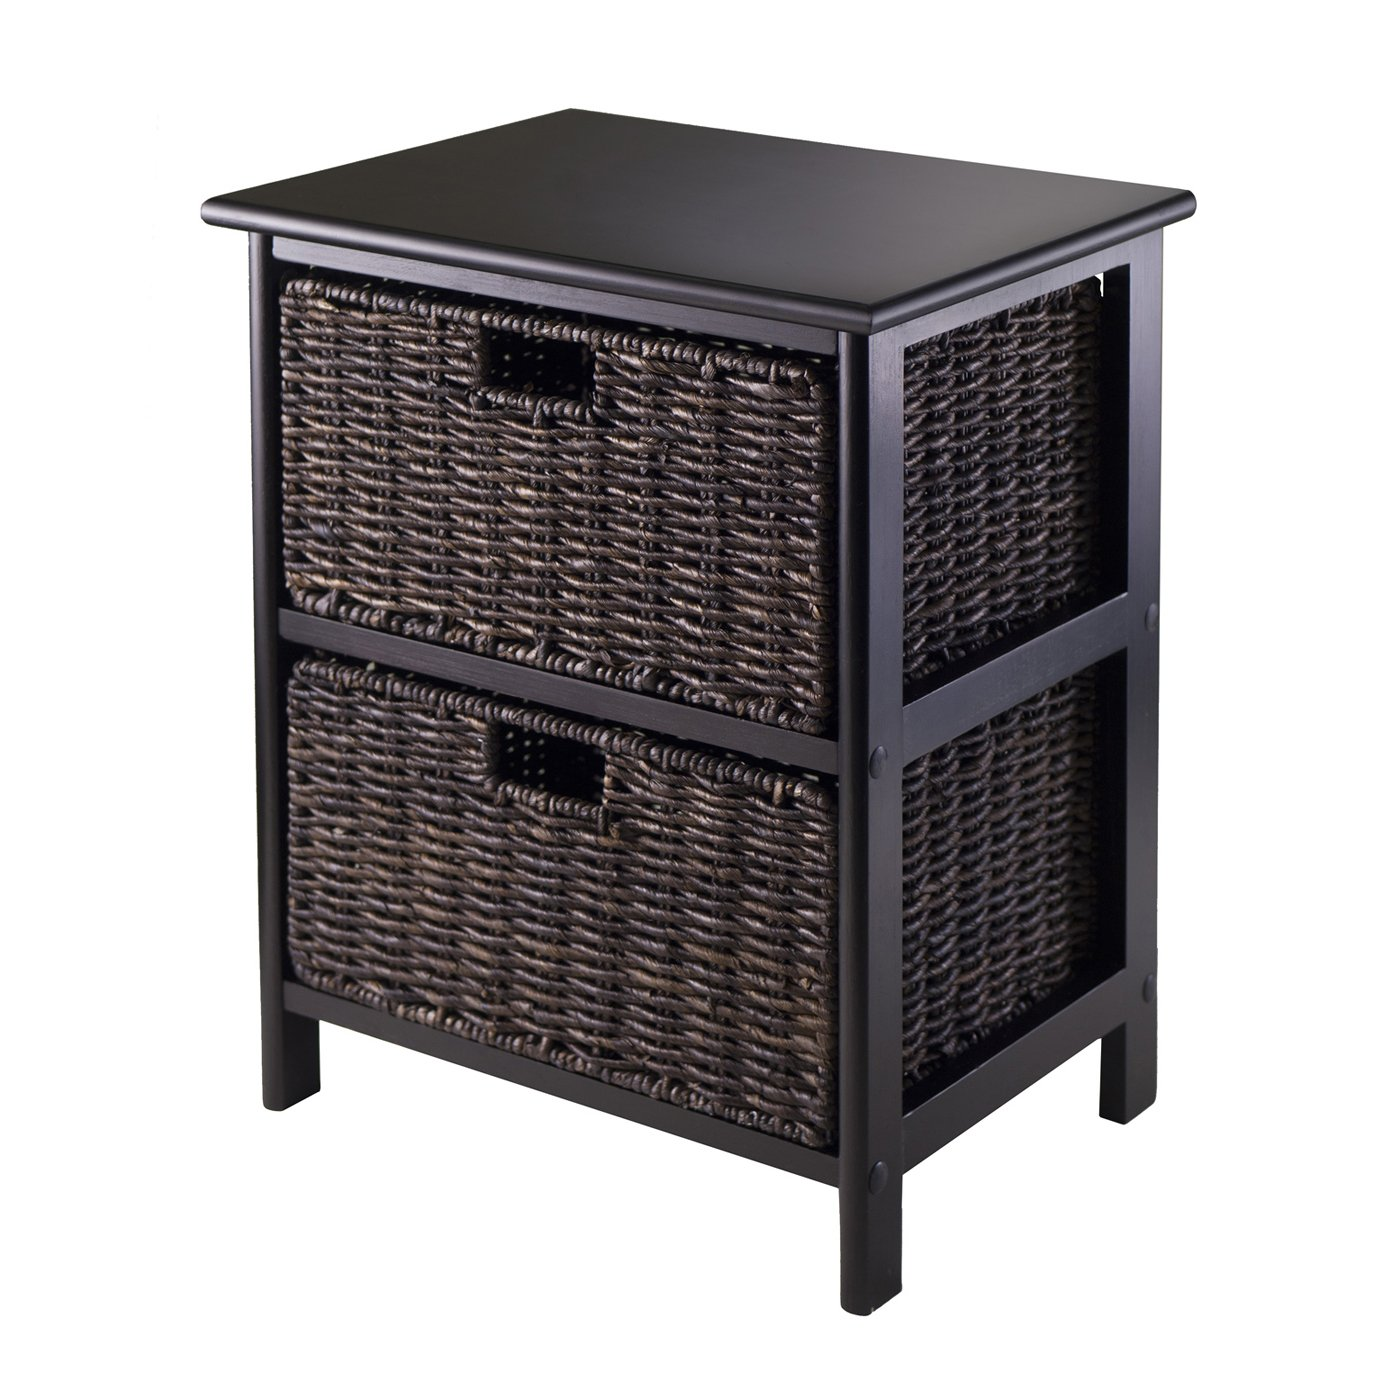 winsome wood omaha storage rack with two foldable skinny zoey night accent table baskets walnut mosaic patio chairs turquoise sofa target unique tables ikea shelves bins throw